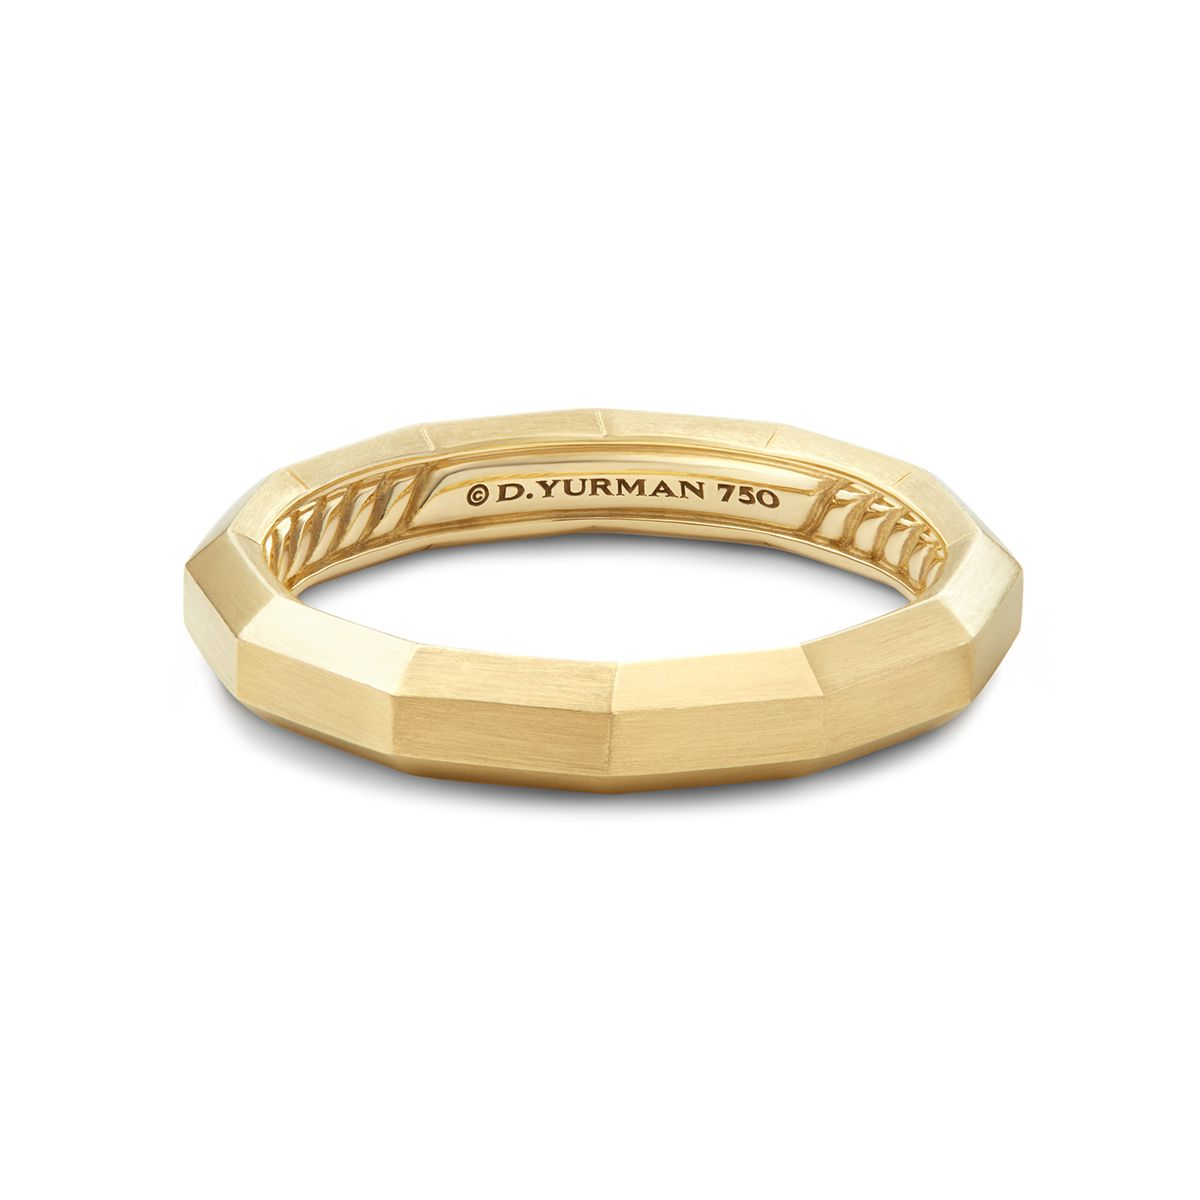 DY Delaunay Narrow Band Ring in 18K Gold